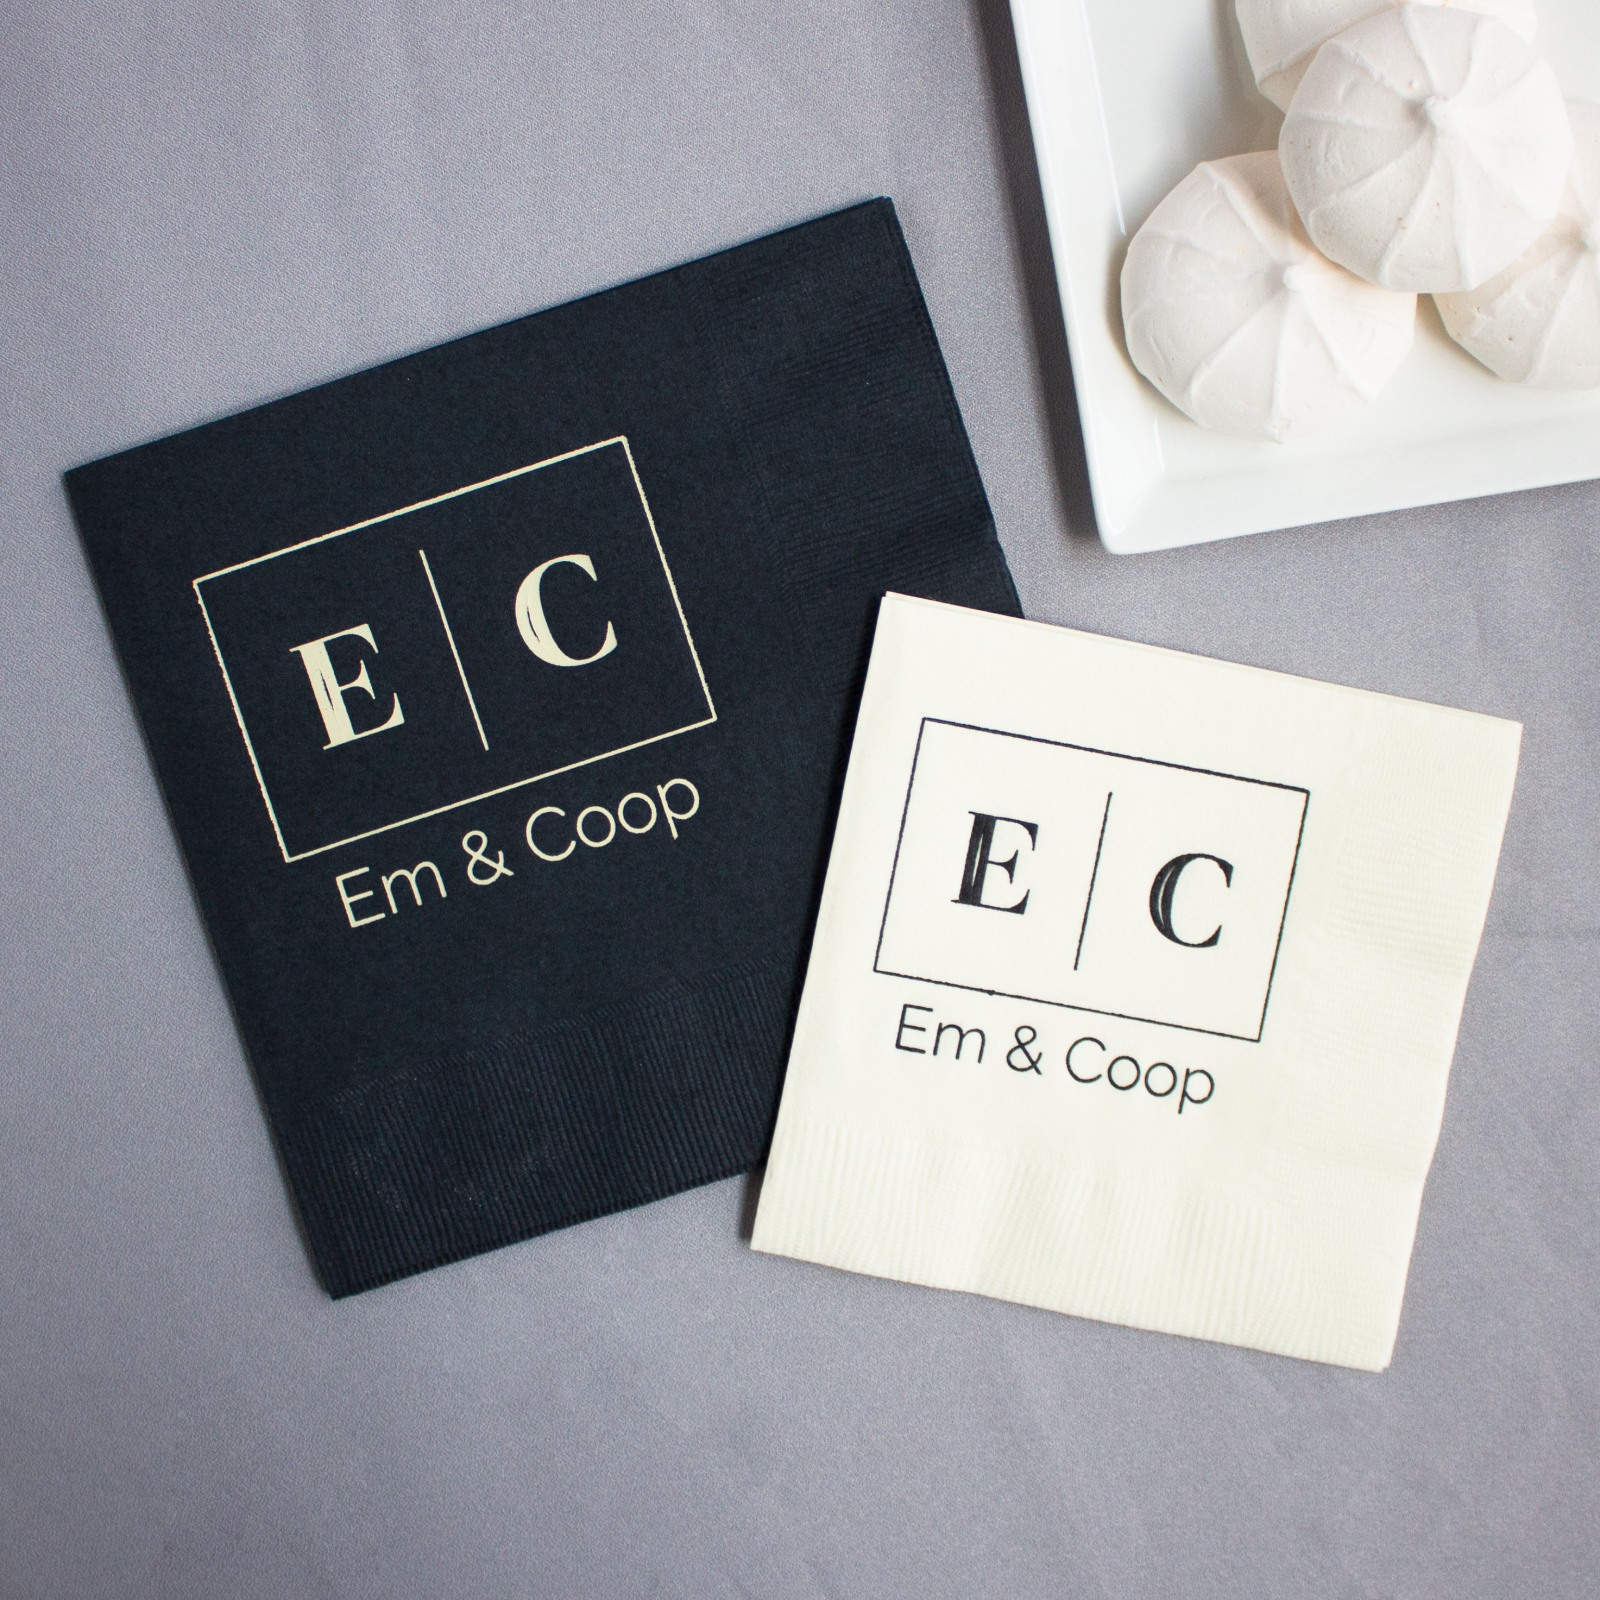 Personalized Corporate Logo Napkin